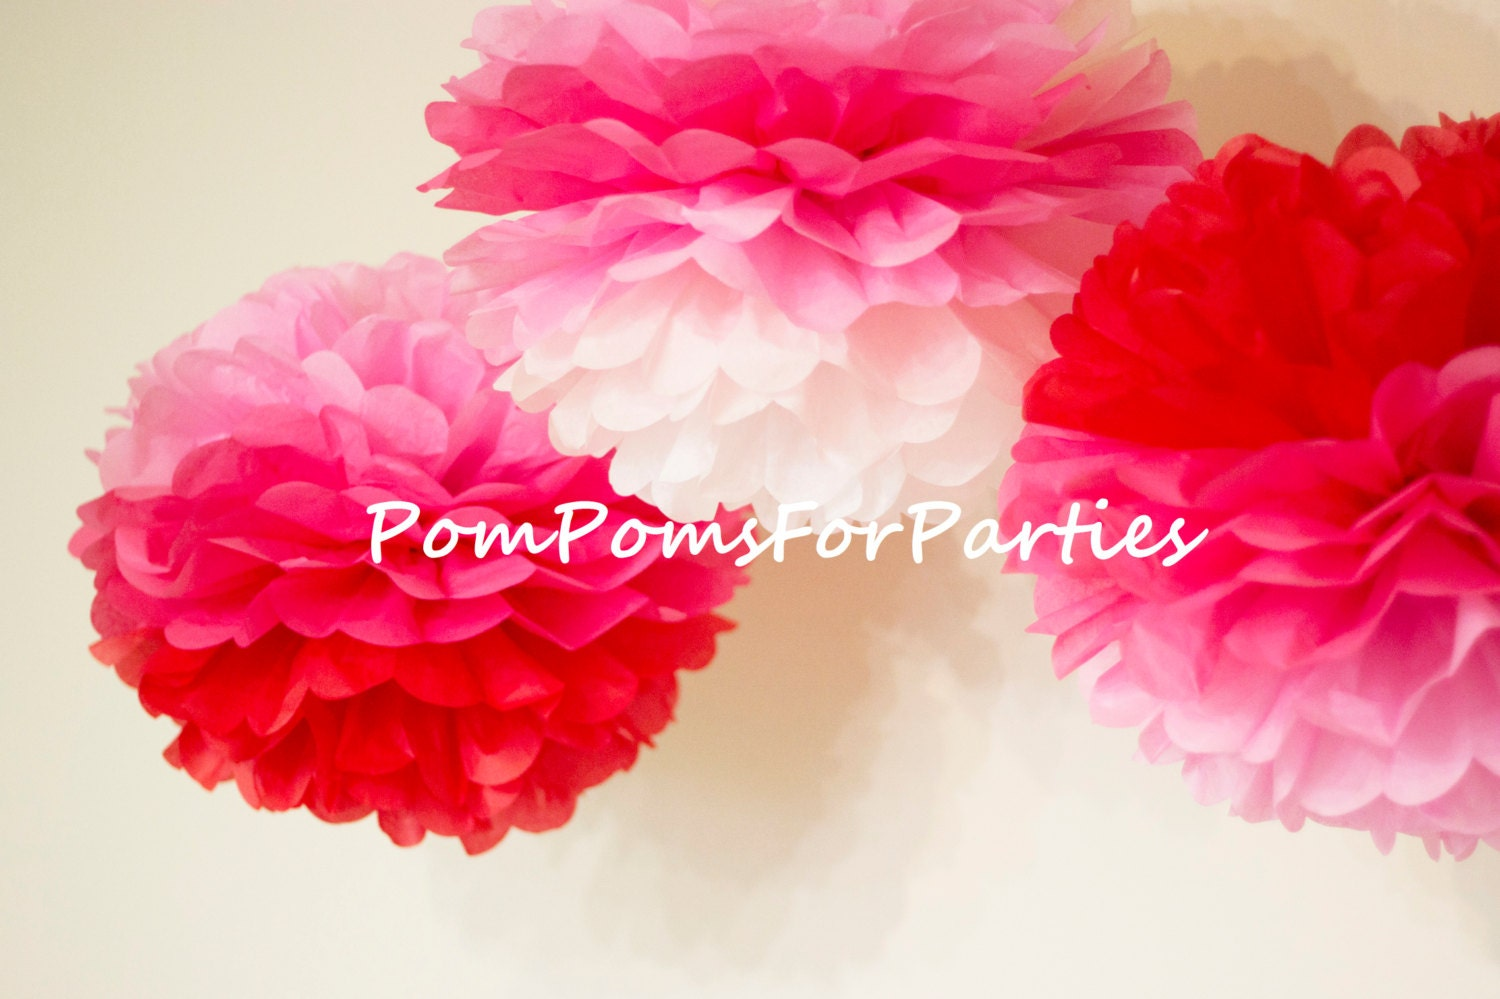 Pack Of 3 Ombre Red To Pink Pom Poms More Sheets For Fullest